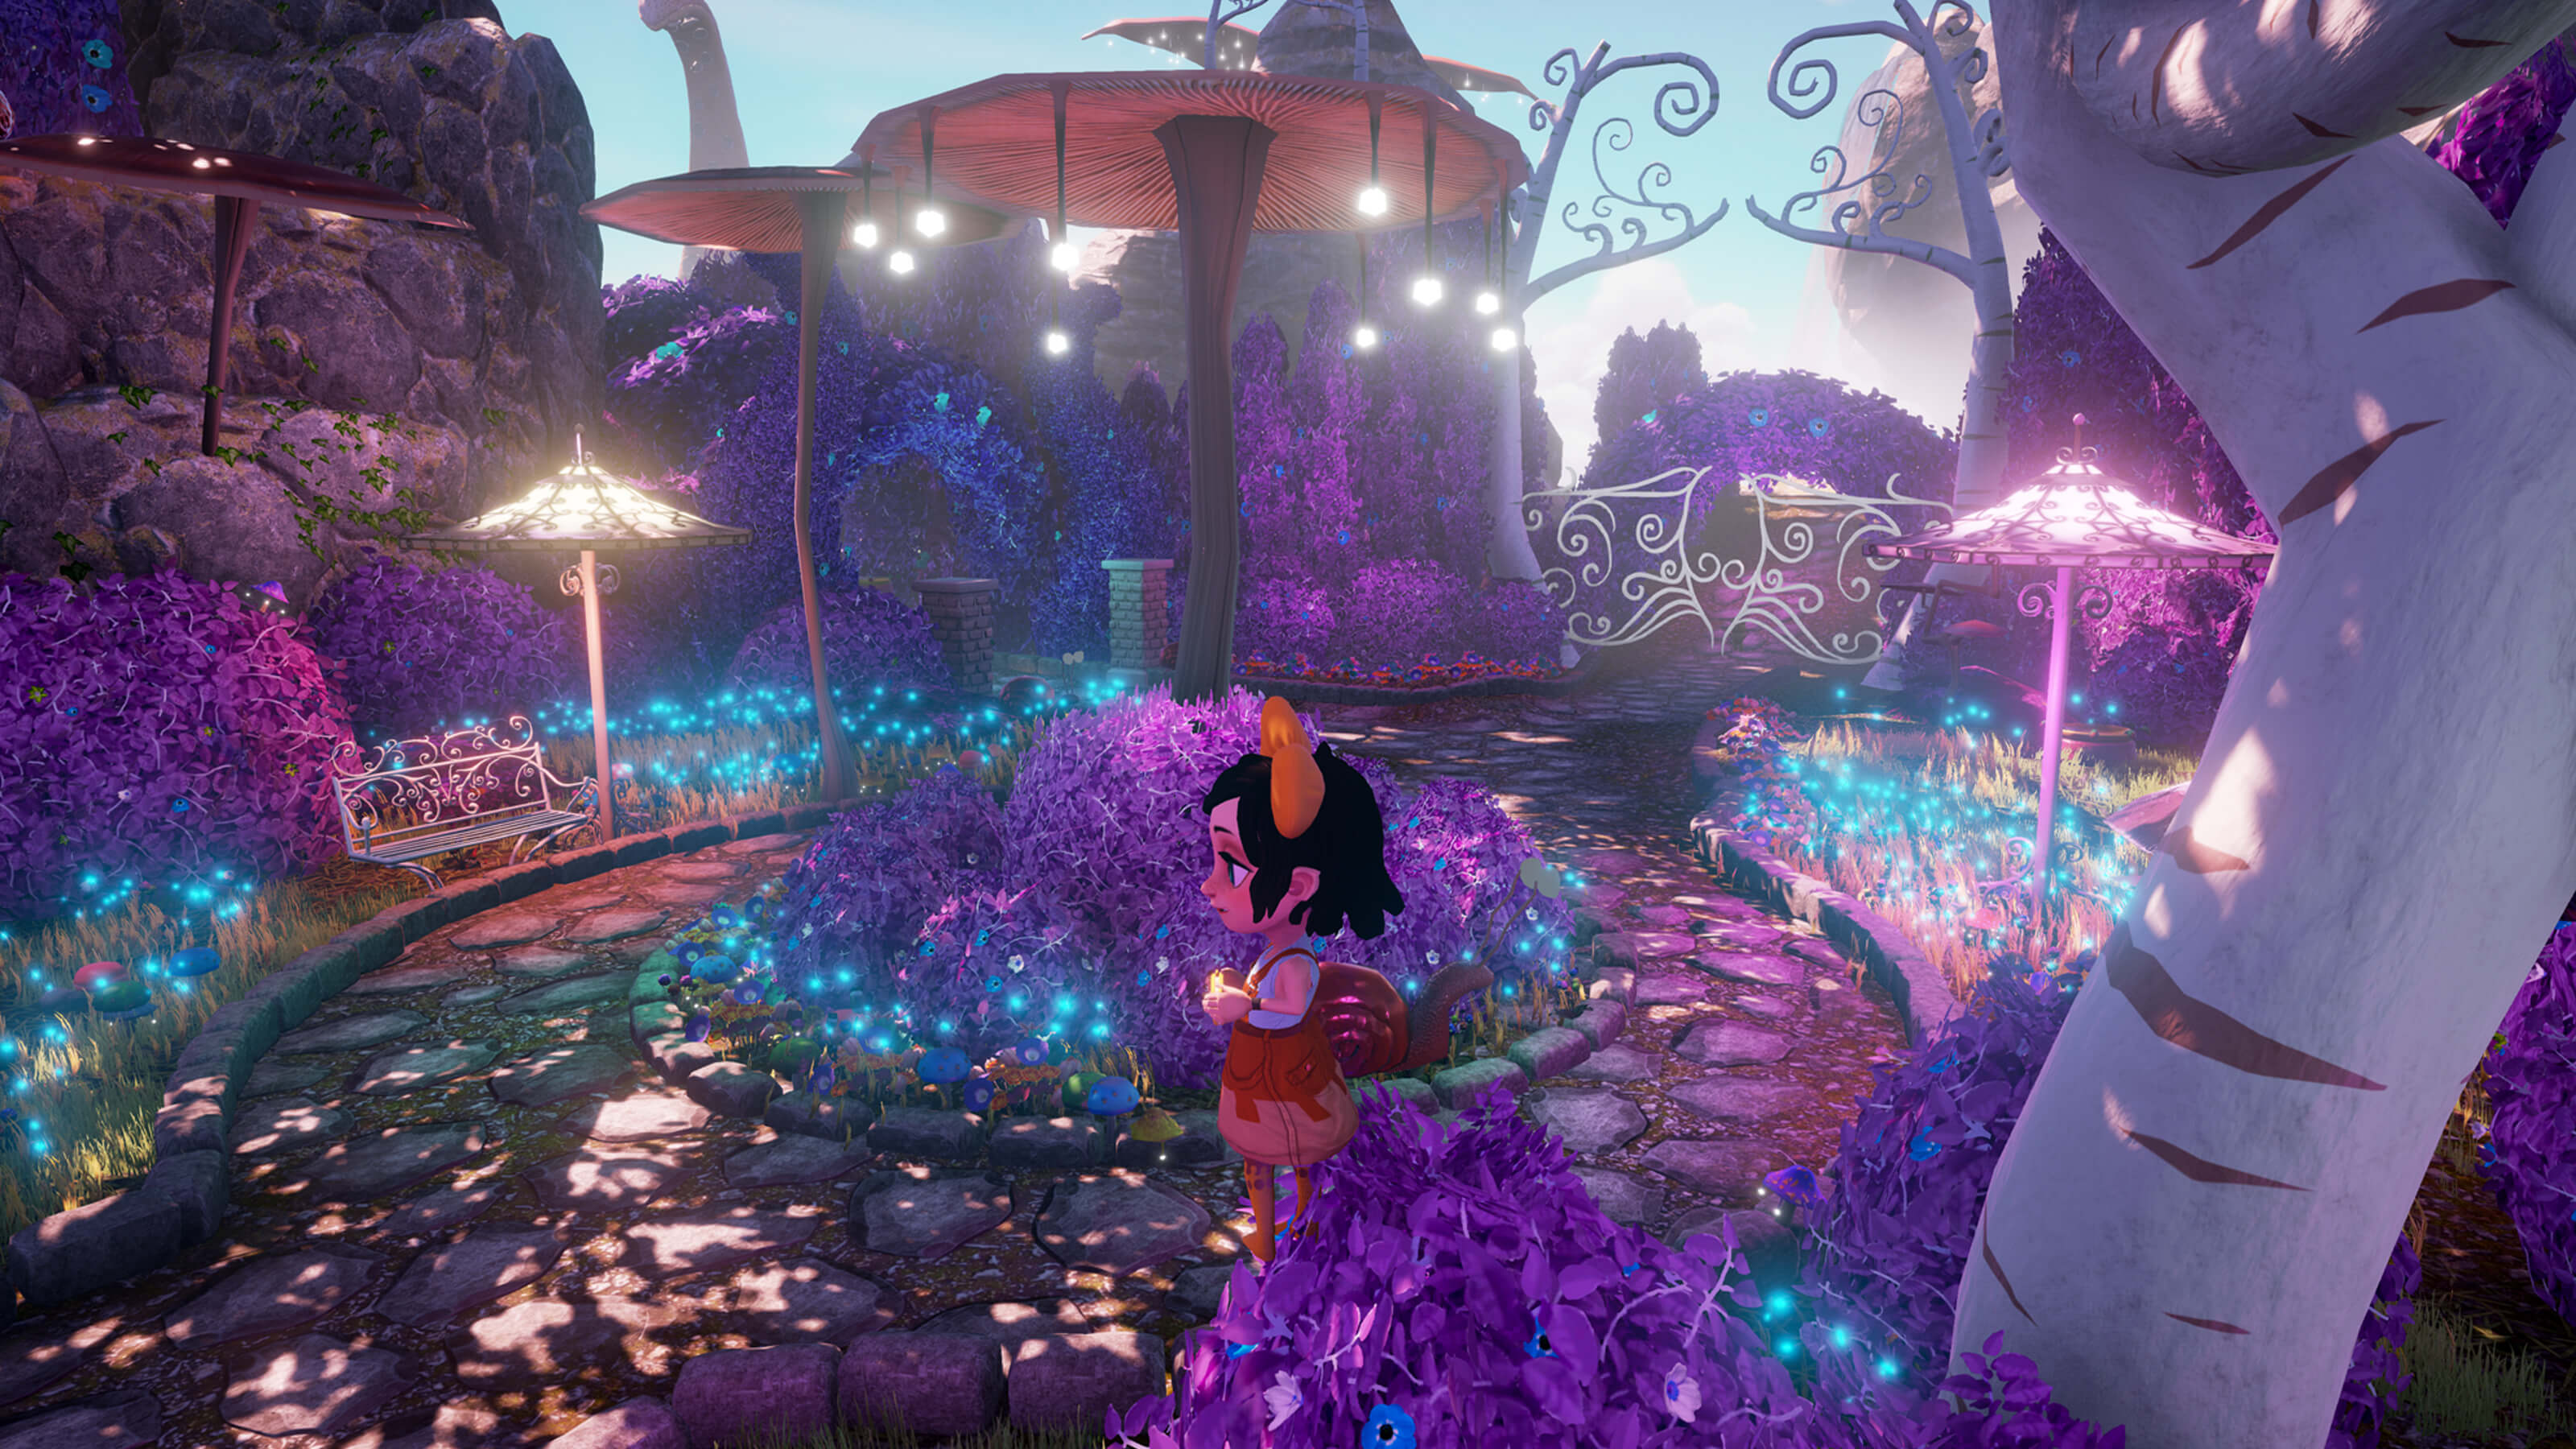 Melanie stands on a circular path full of purple foliage and glowing mushrooms. A snail crawls behind her.